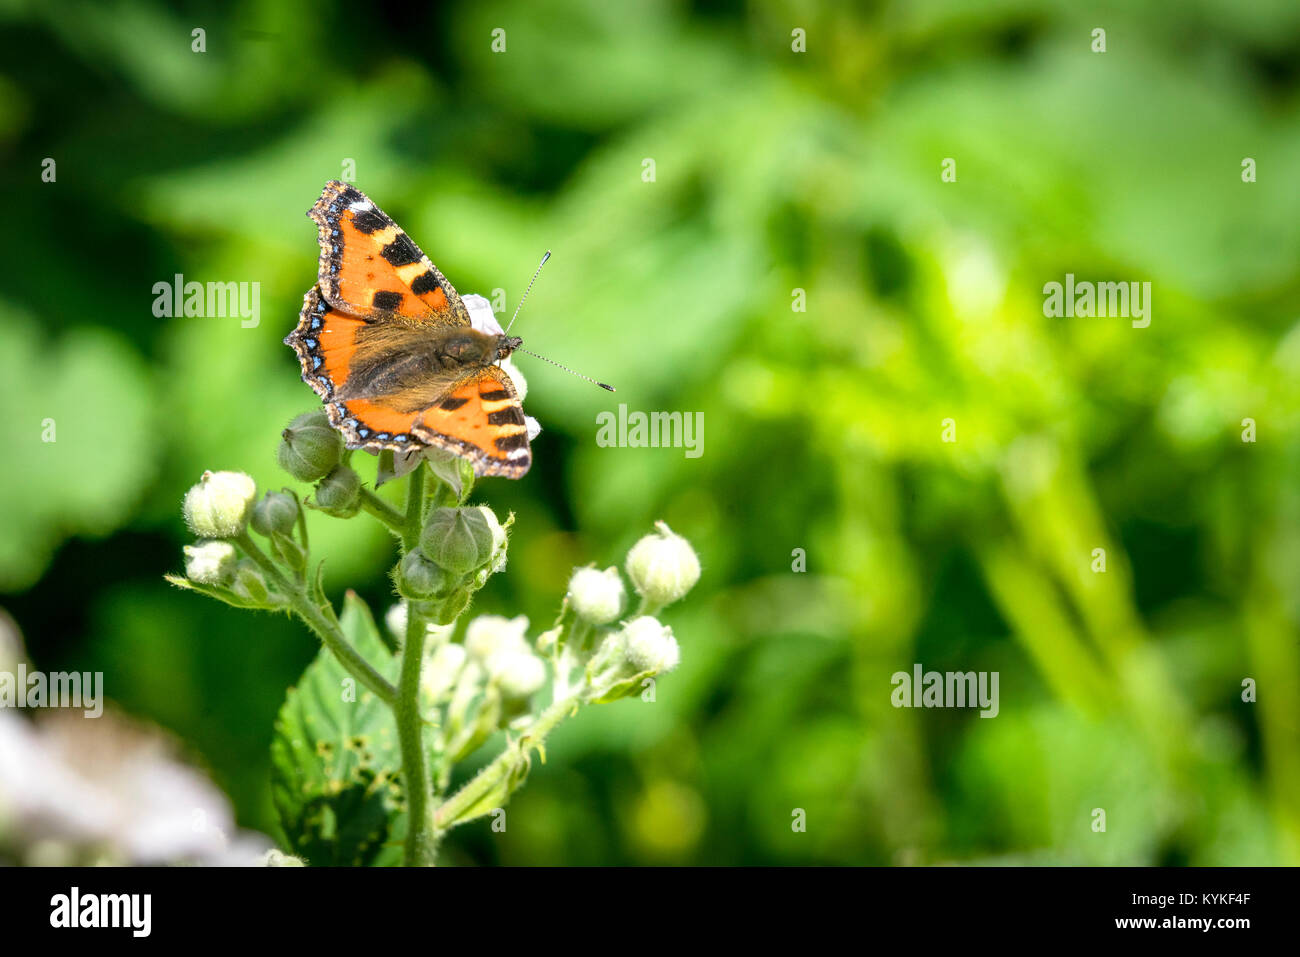 Tortoiseshell butterfly sitting on a white flower in a garden in the summer - Stock Image